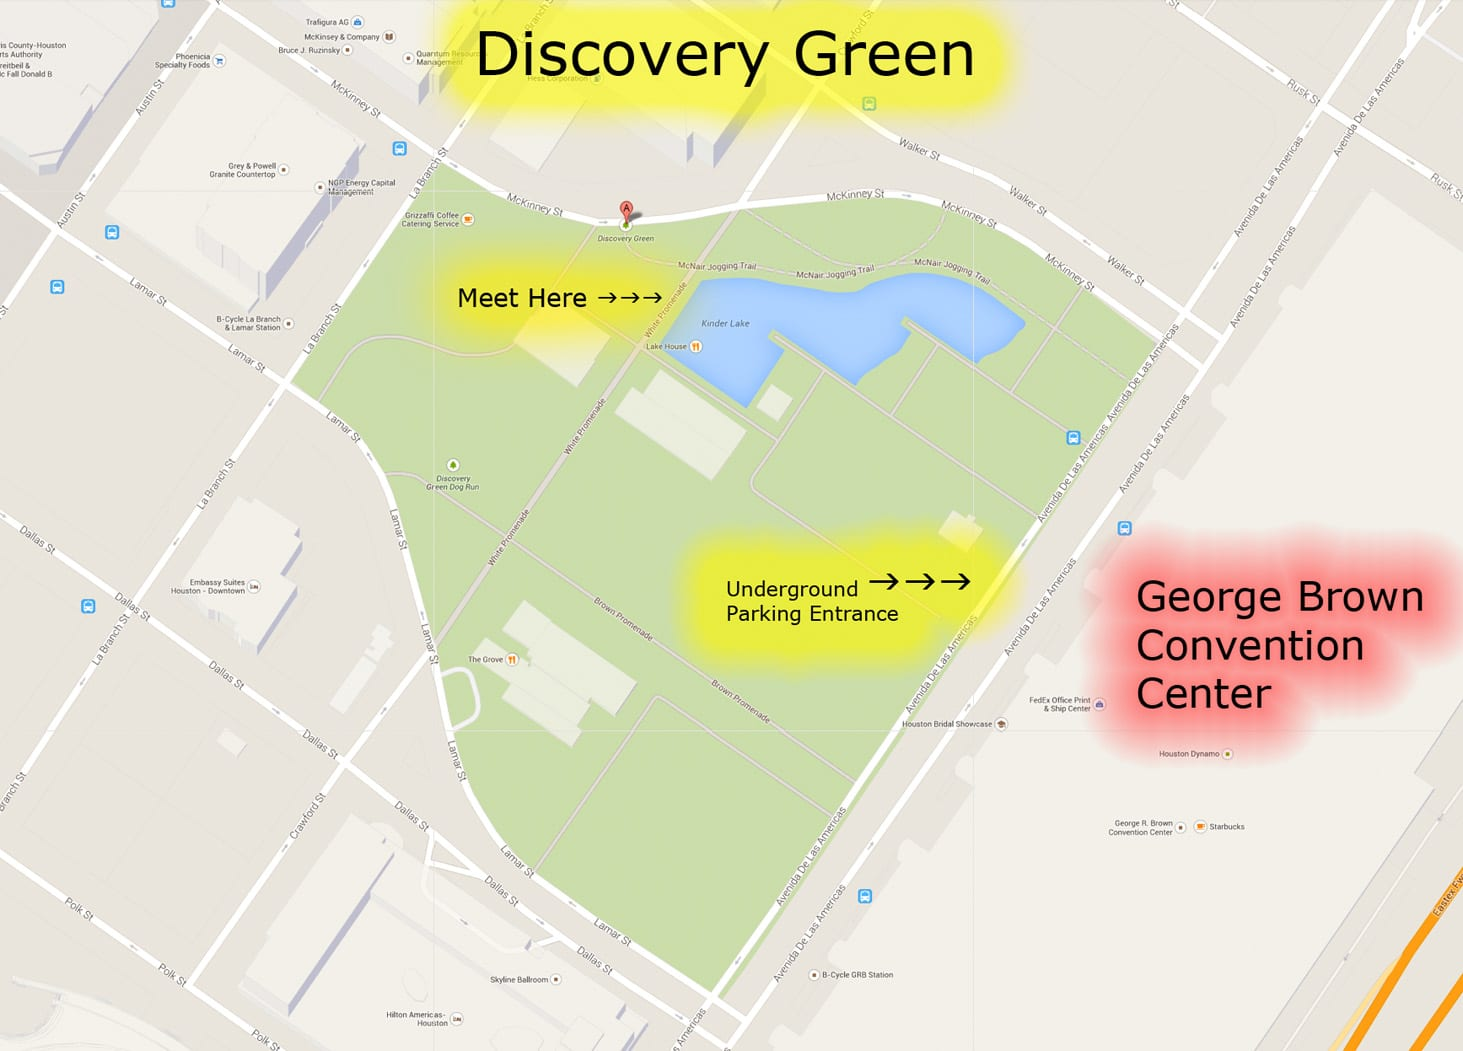 MAP_DiscoveryGreen2014t